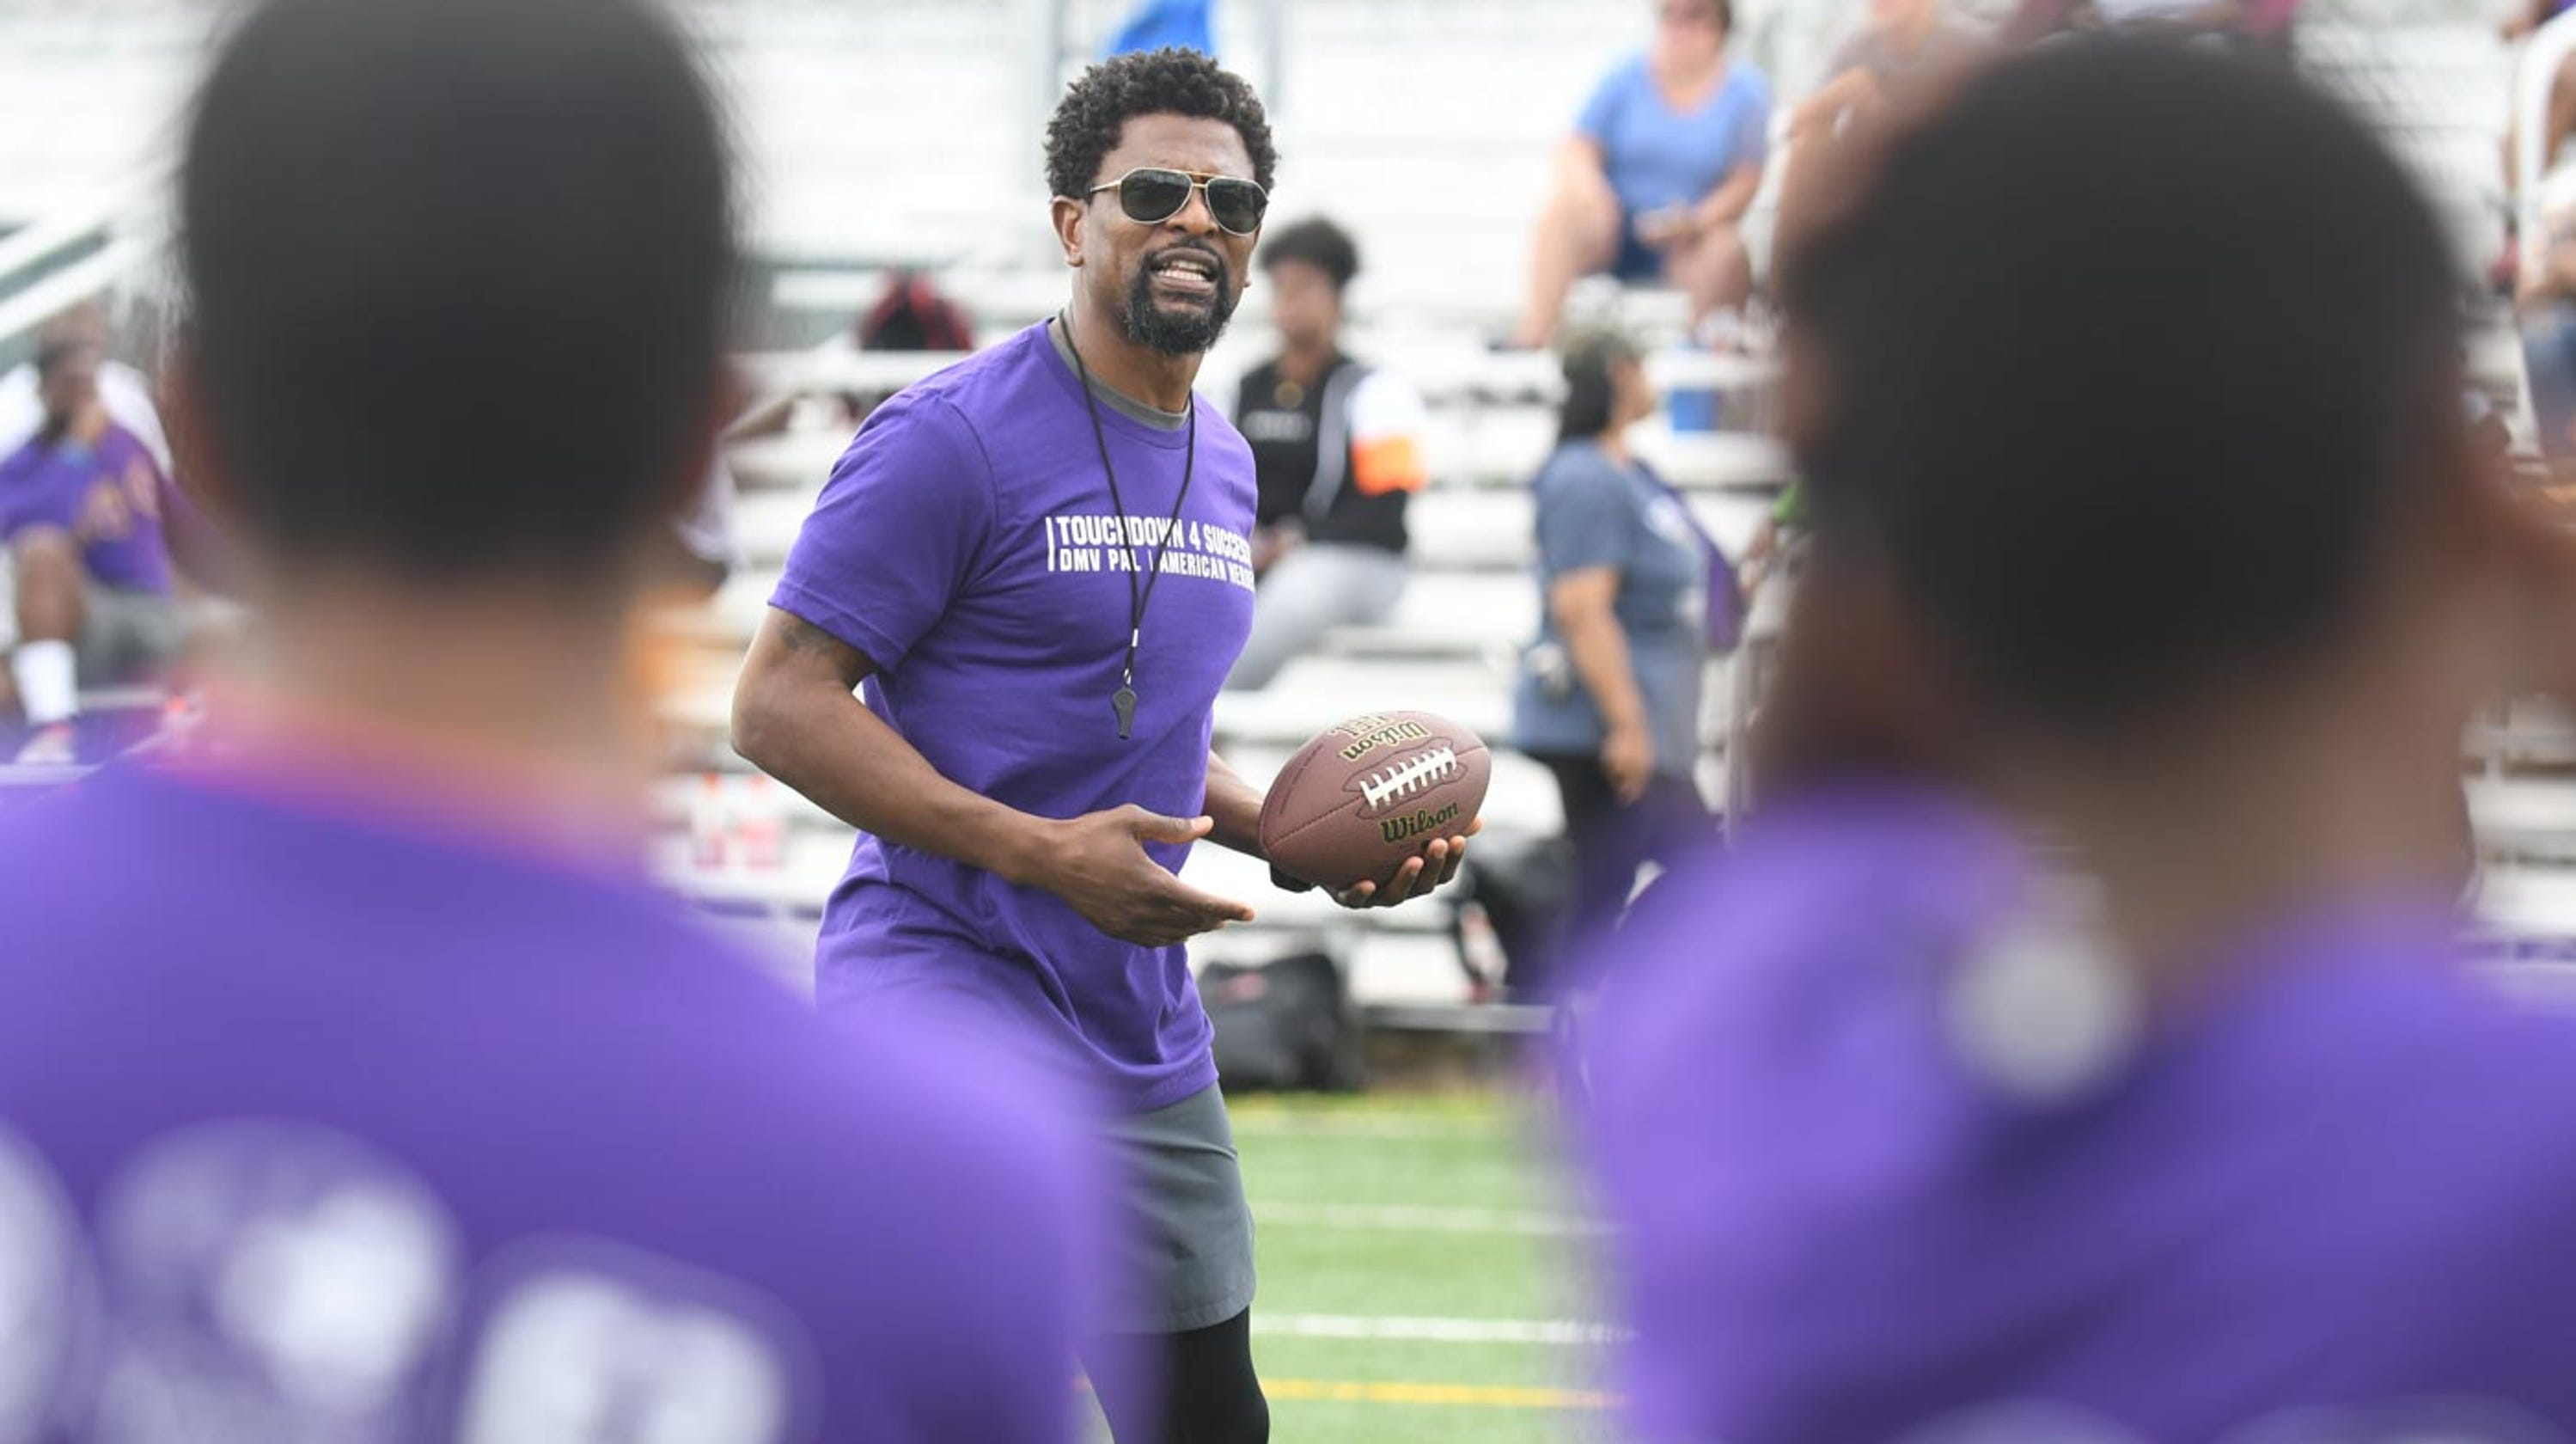 2a49b876 Former NFL players help bridge gap between youth and police